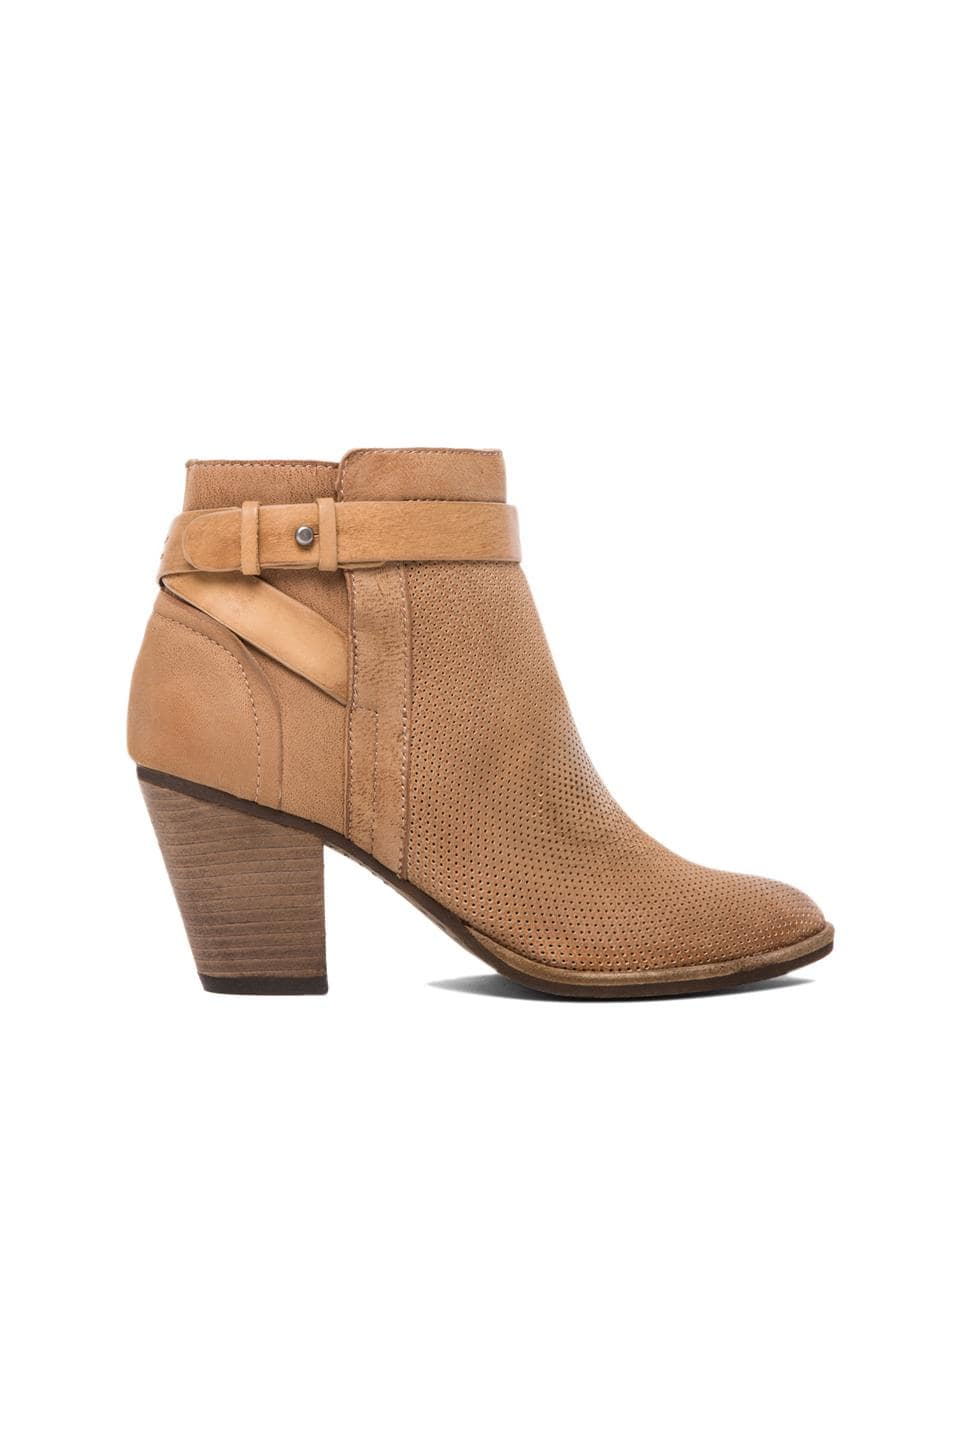 Dolce Vita Yuri Bootie in Natural